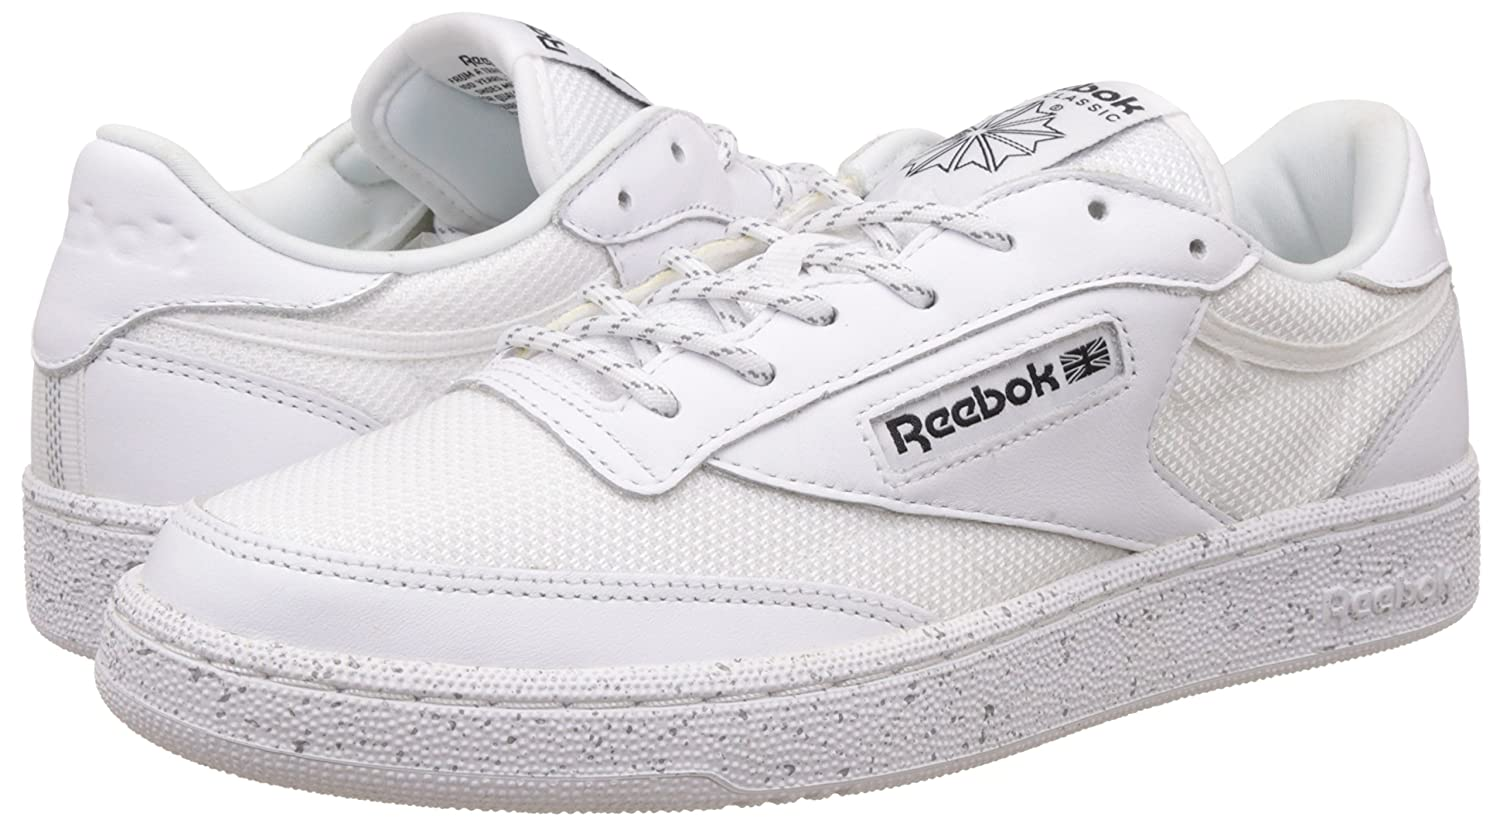 7831419bd Reebok Classics Men s Club C 85 St Tennis Shoes  Buy Online at Low Prices  in India - Amazon.in